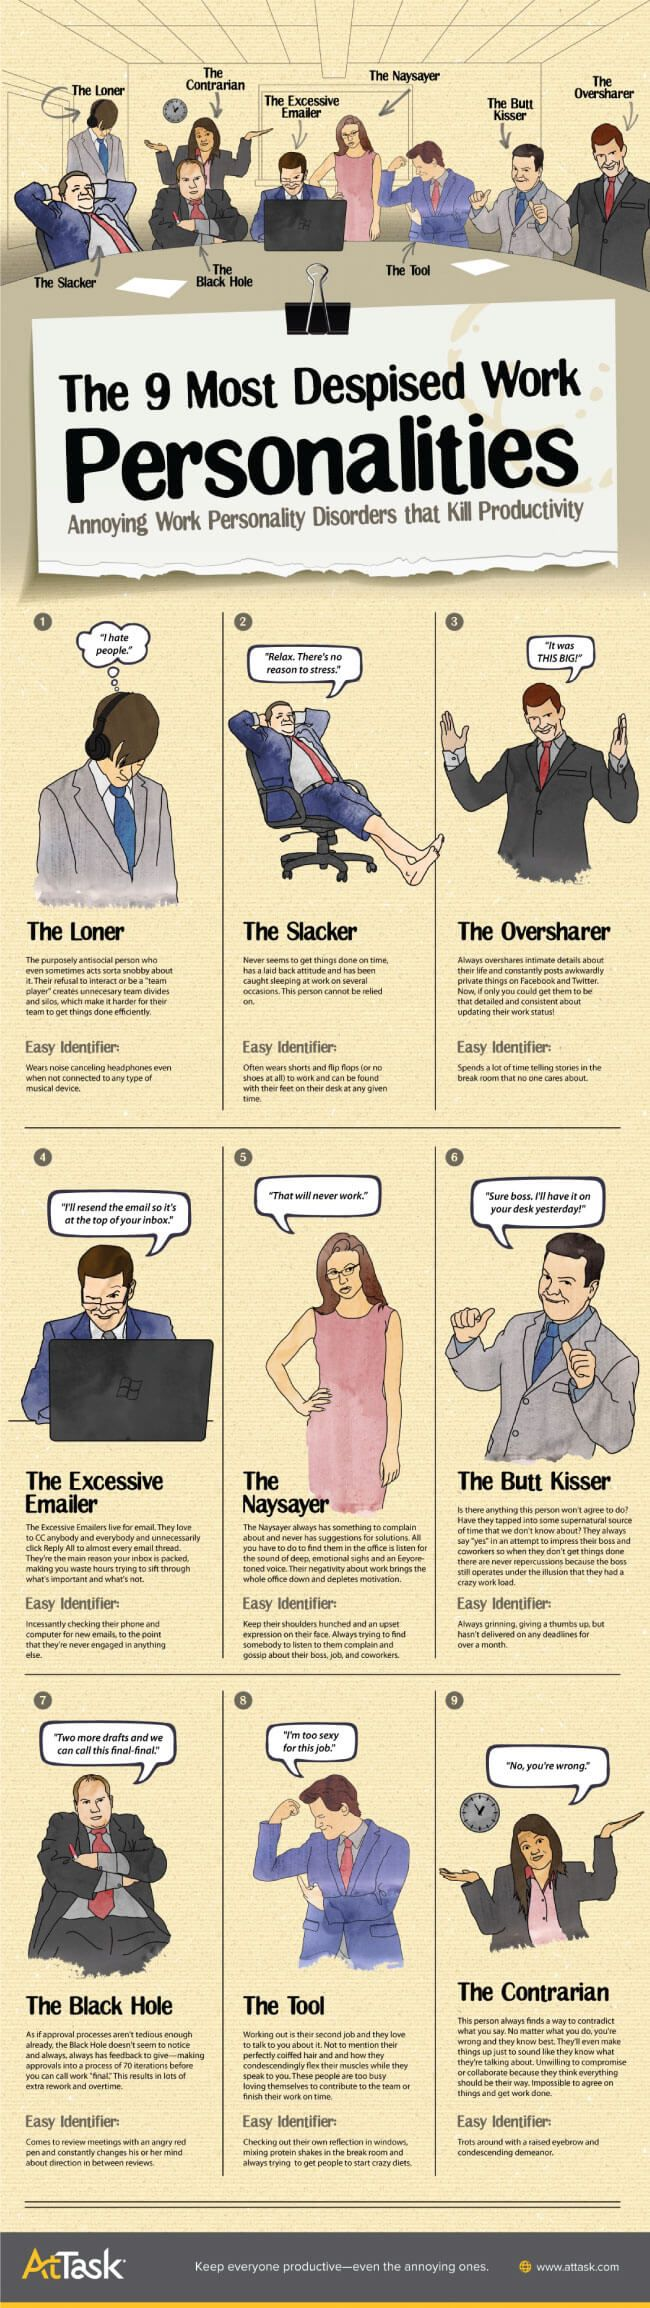 Image titled 'The 9 Most Despised Work Personalities'